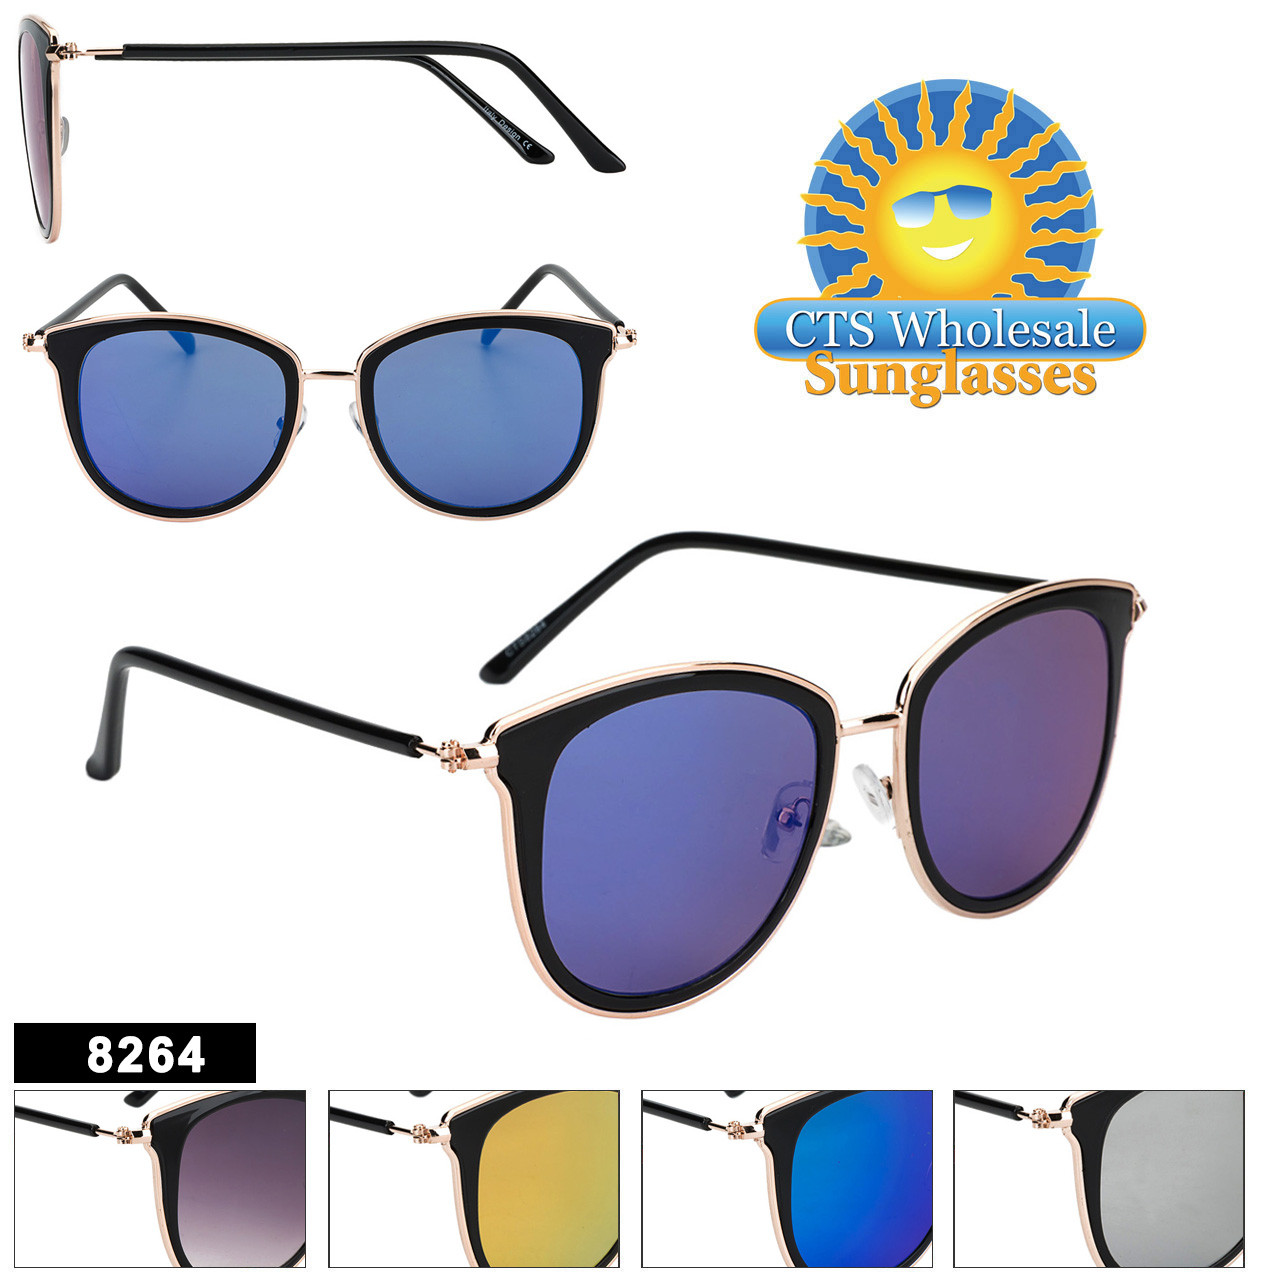 Mirrored Women's Retro Sunglasses - Style #8264